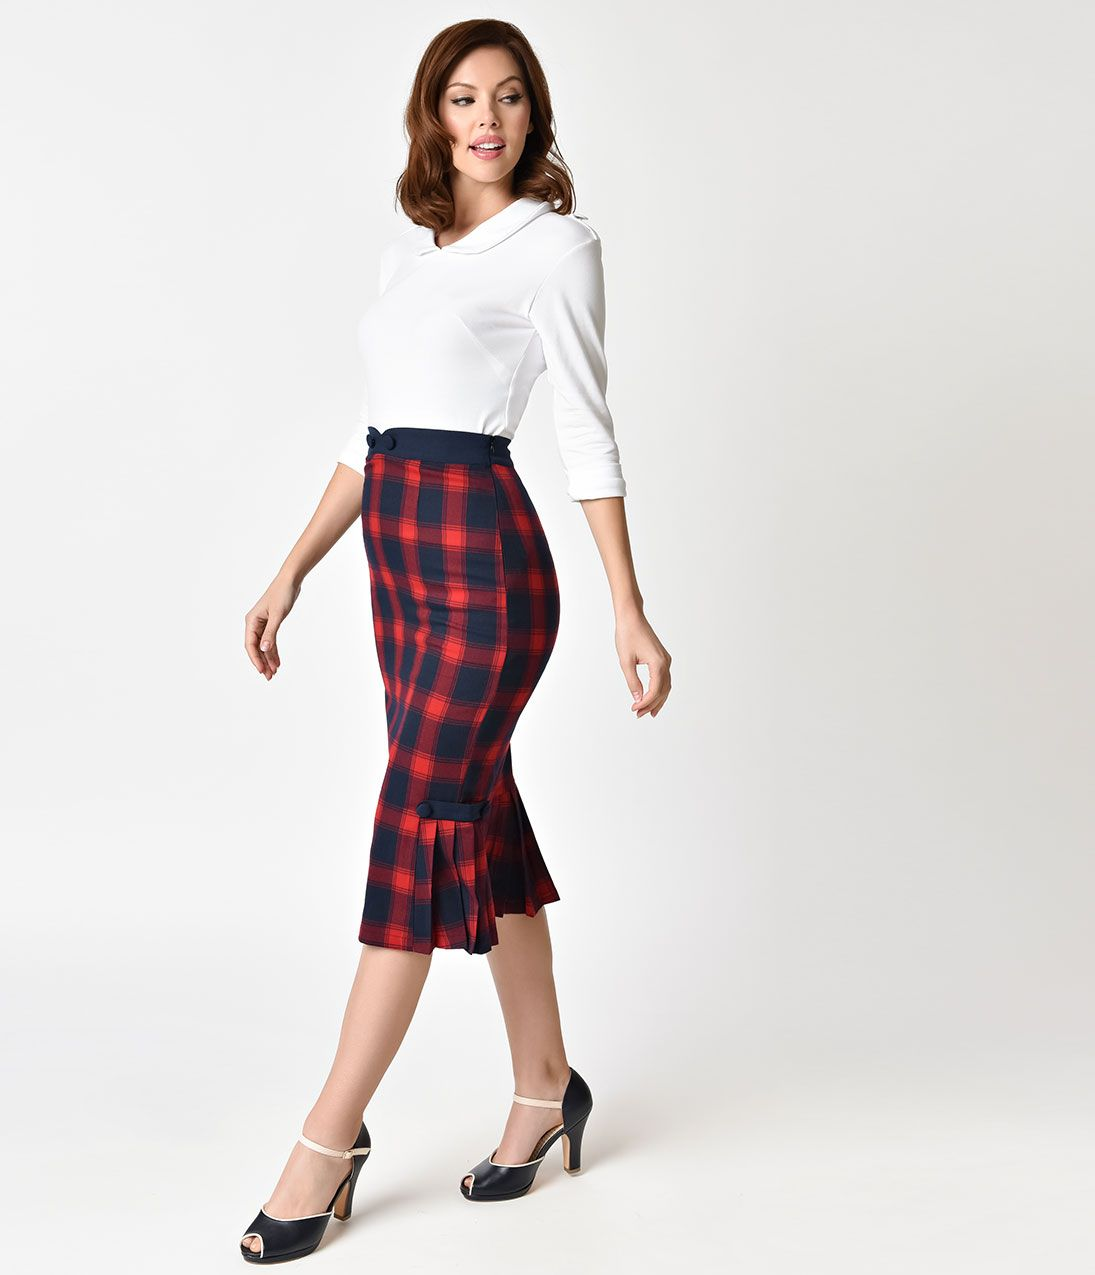 1950s Skirt Styles & History Voodoo Vixen 1950s Style Red Plaid Pleated  Frenchie Pencil Skirt $52.00